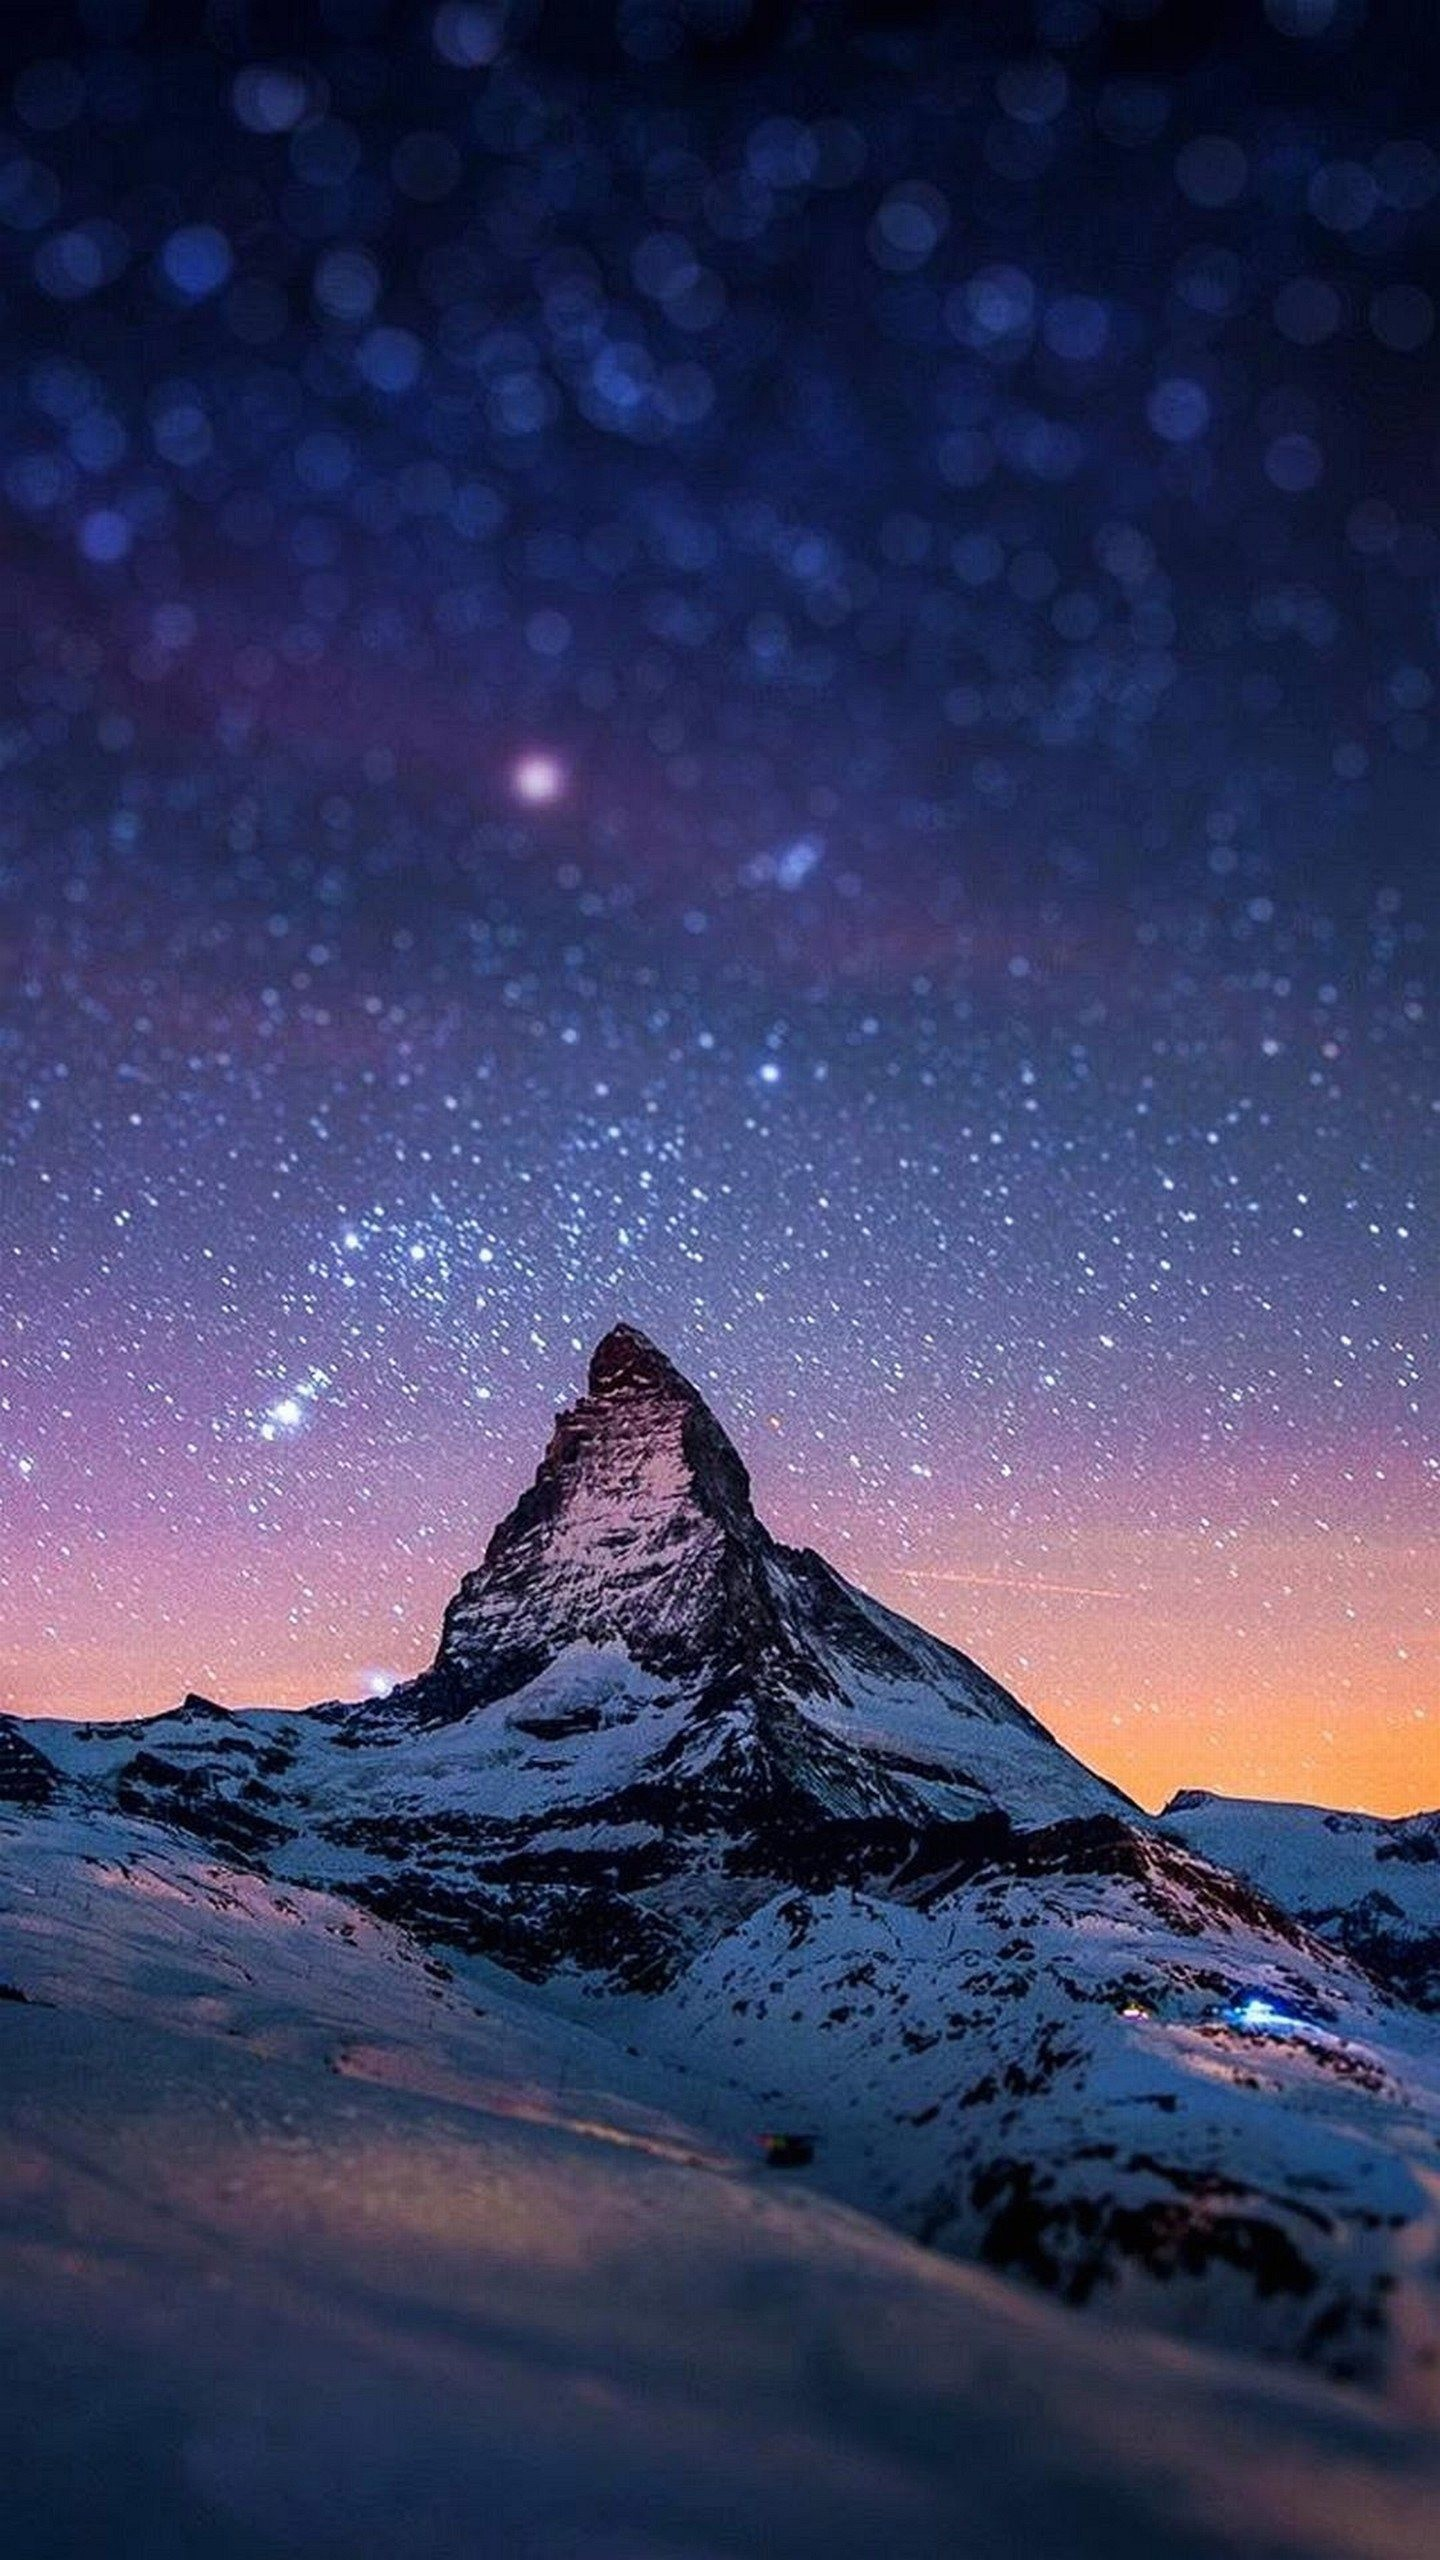 Night And Stars Hd Wallpapers For Galaxy S6 S6 Edge Wallpapers